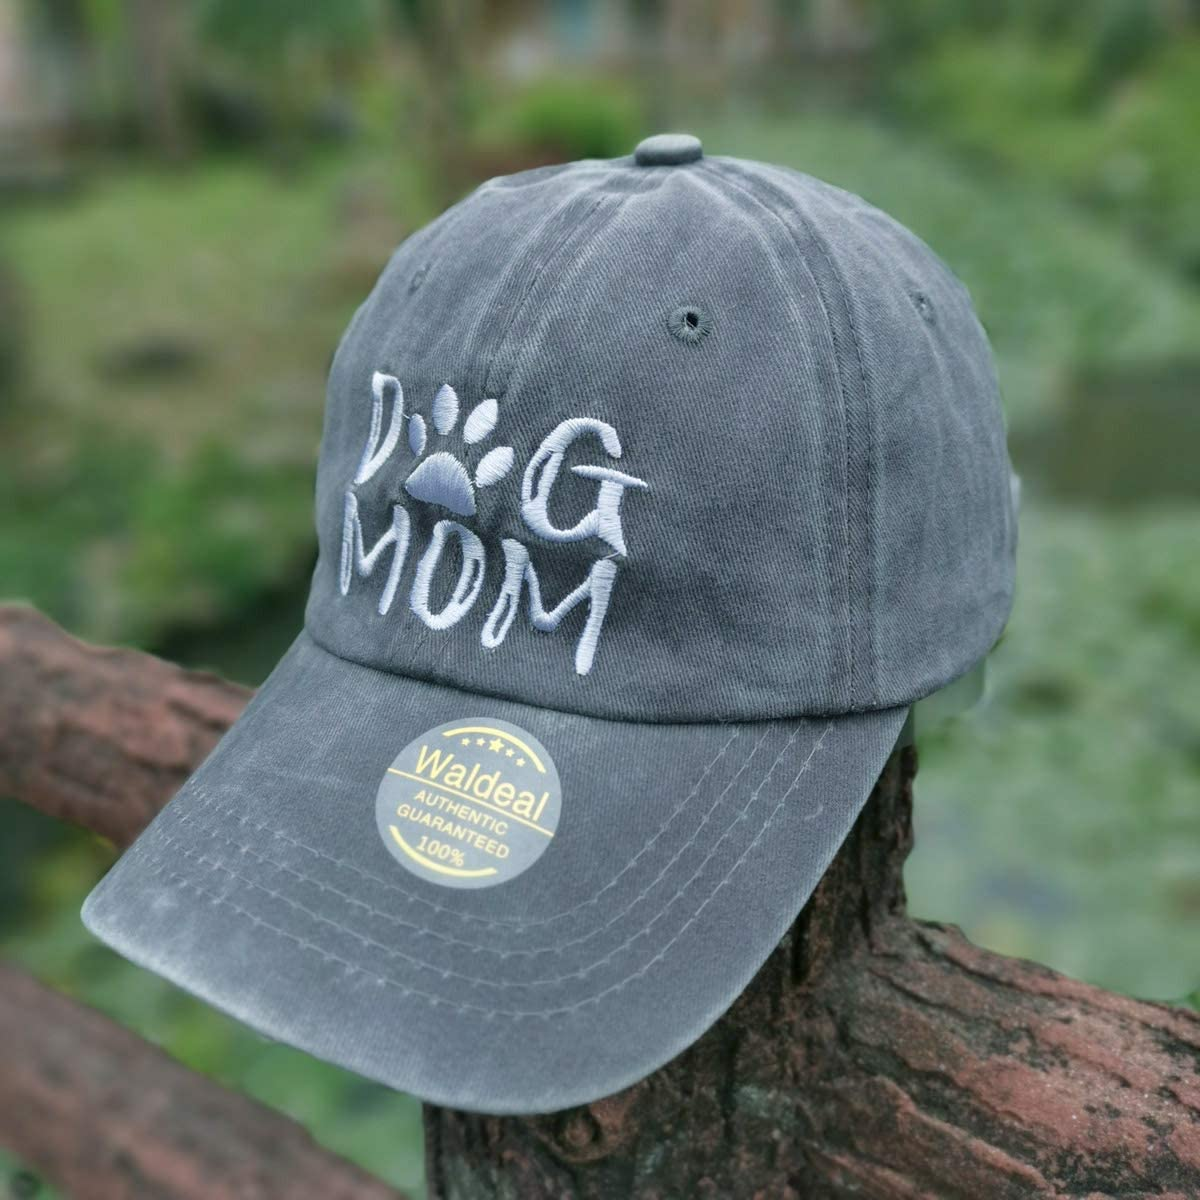 Waldeal Embroidered Women Dog Mom Ponytail Denim Dad Hats Dogs Paw Jeans Baseball Cap Gray